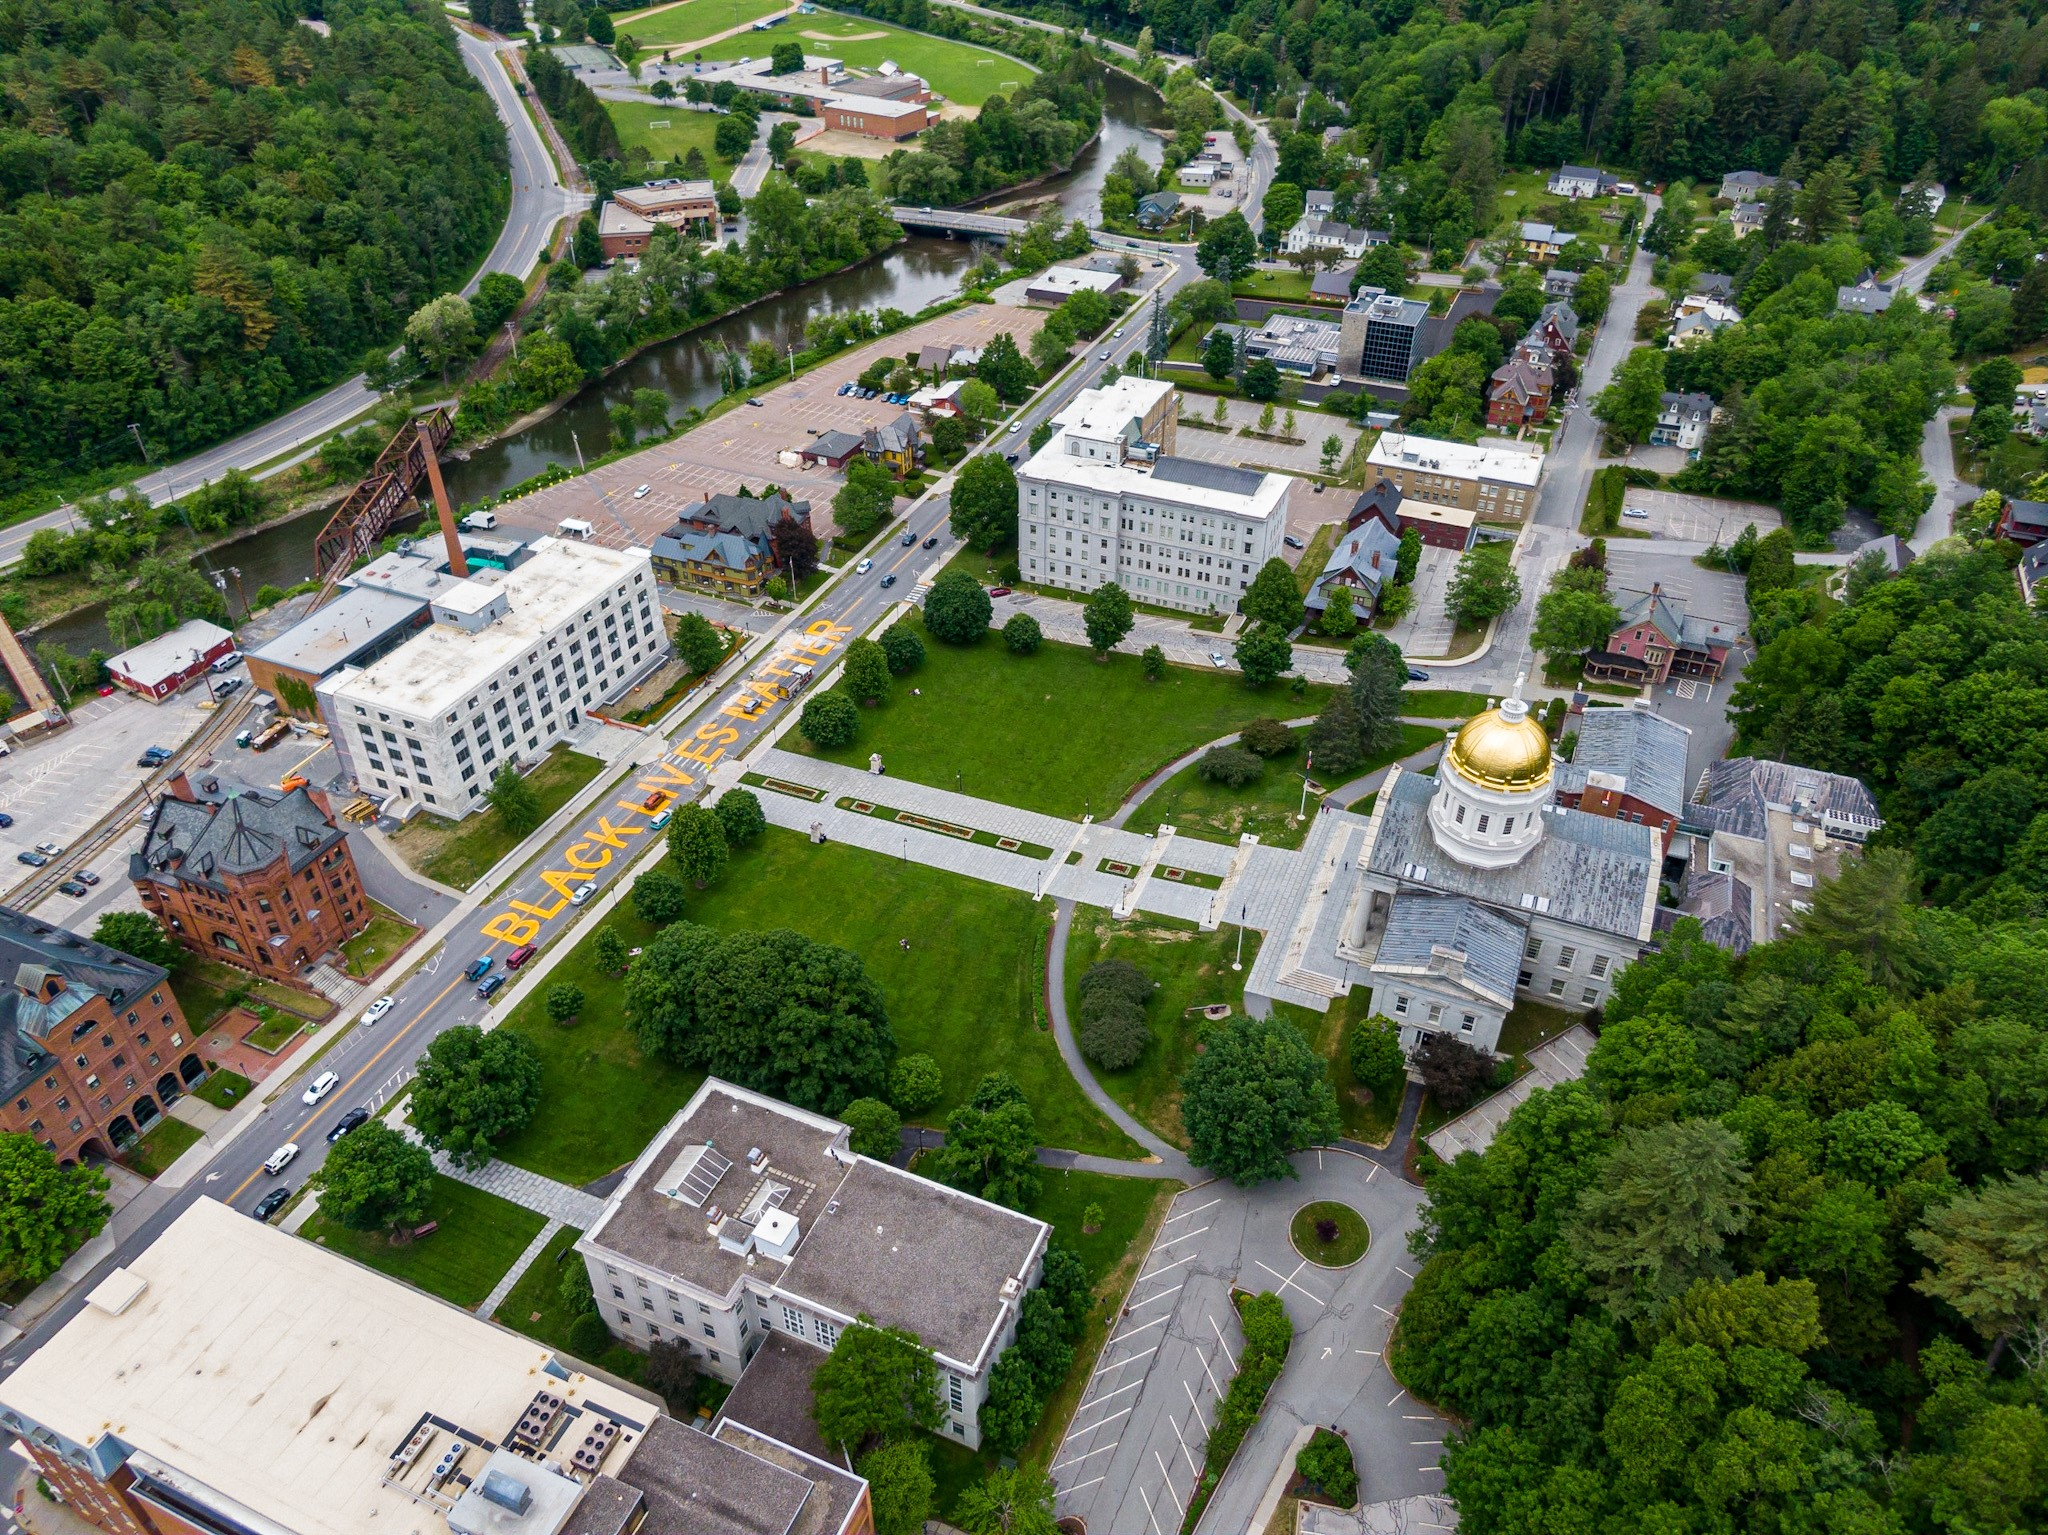 state_house_lawn_drone_shot